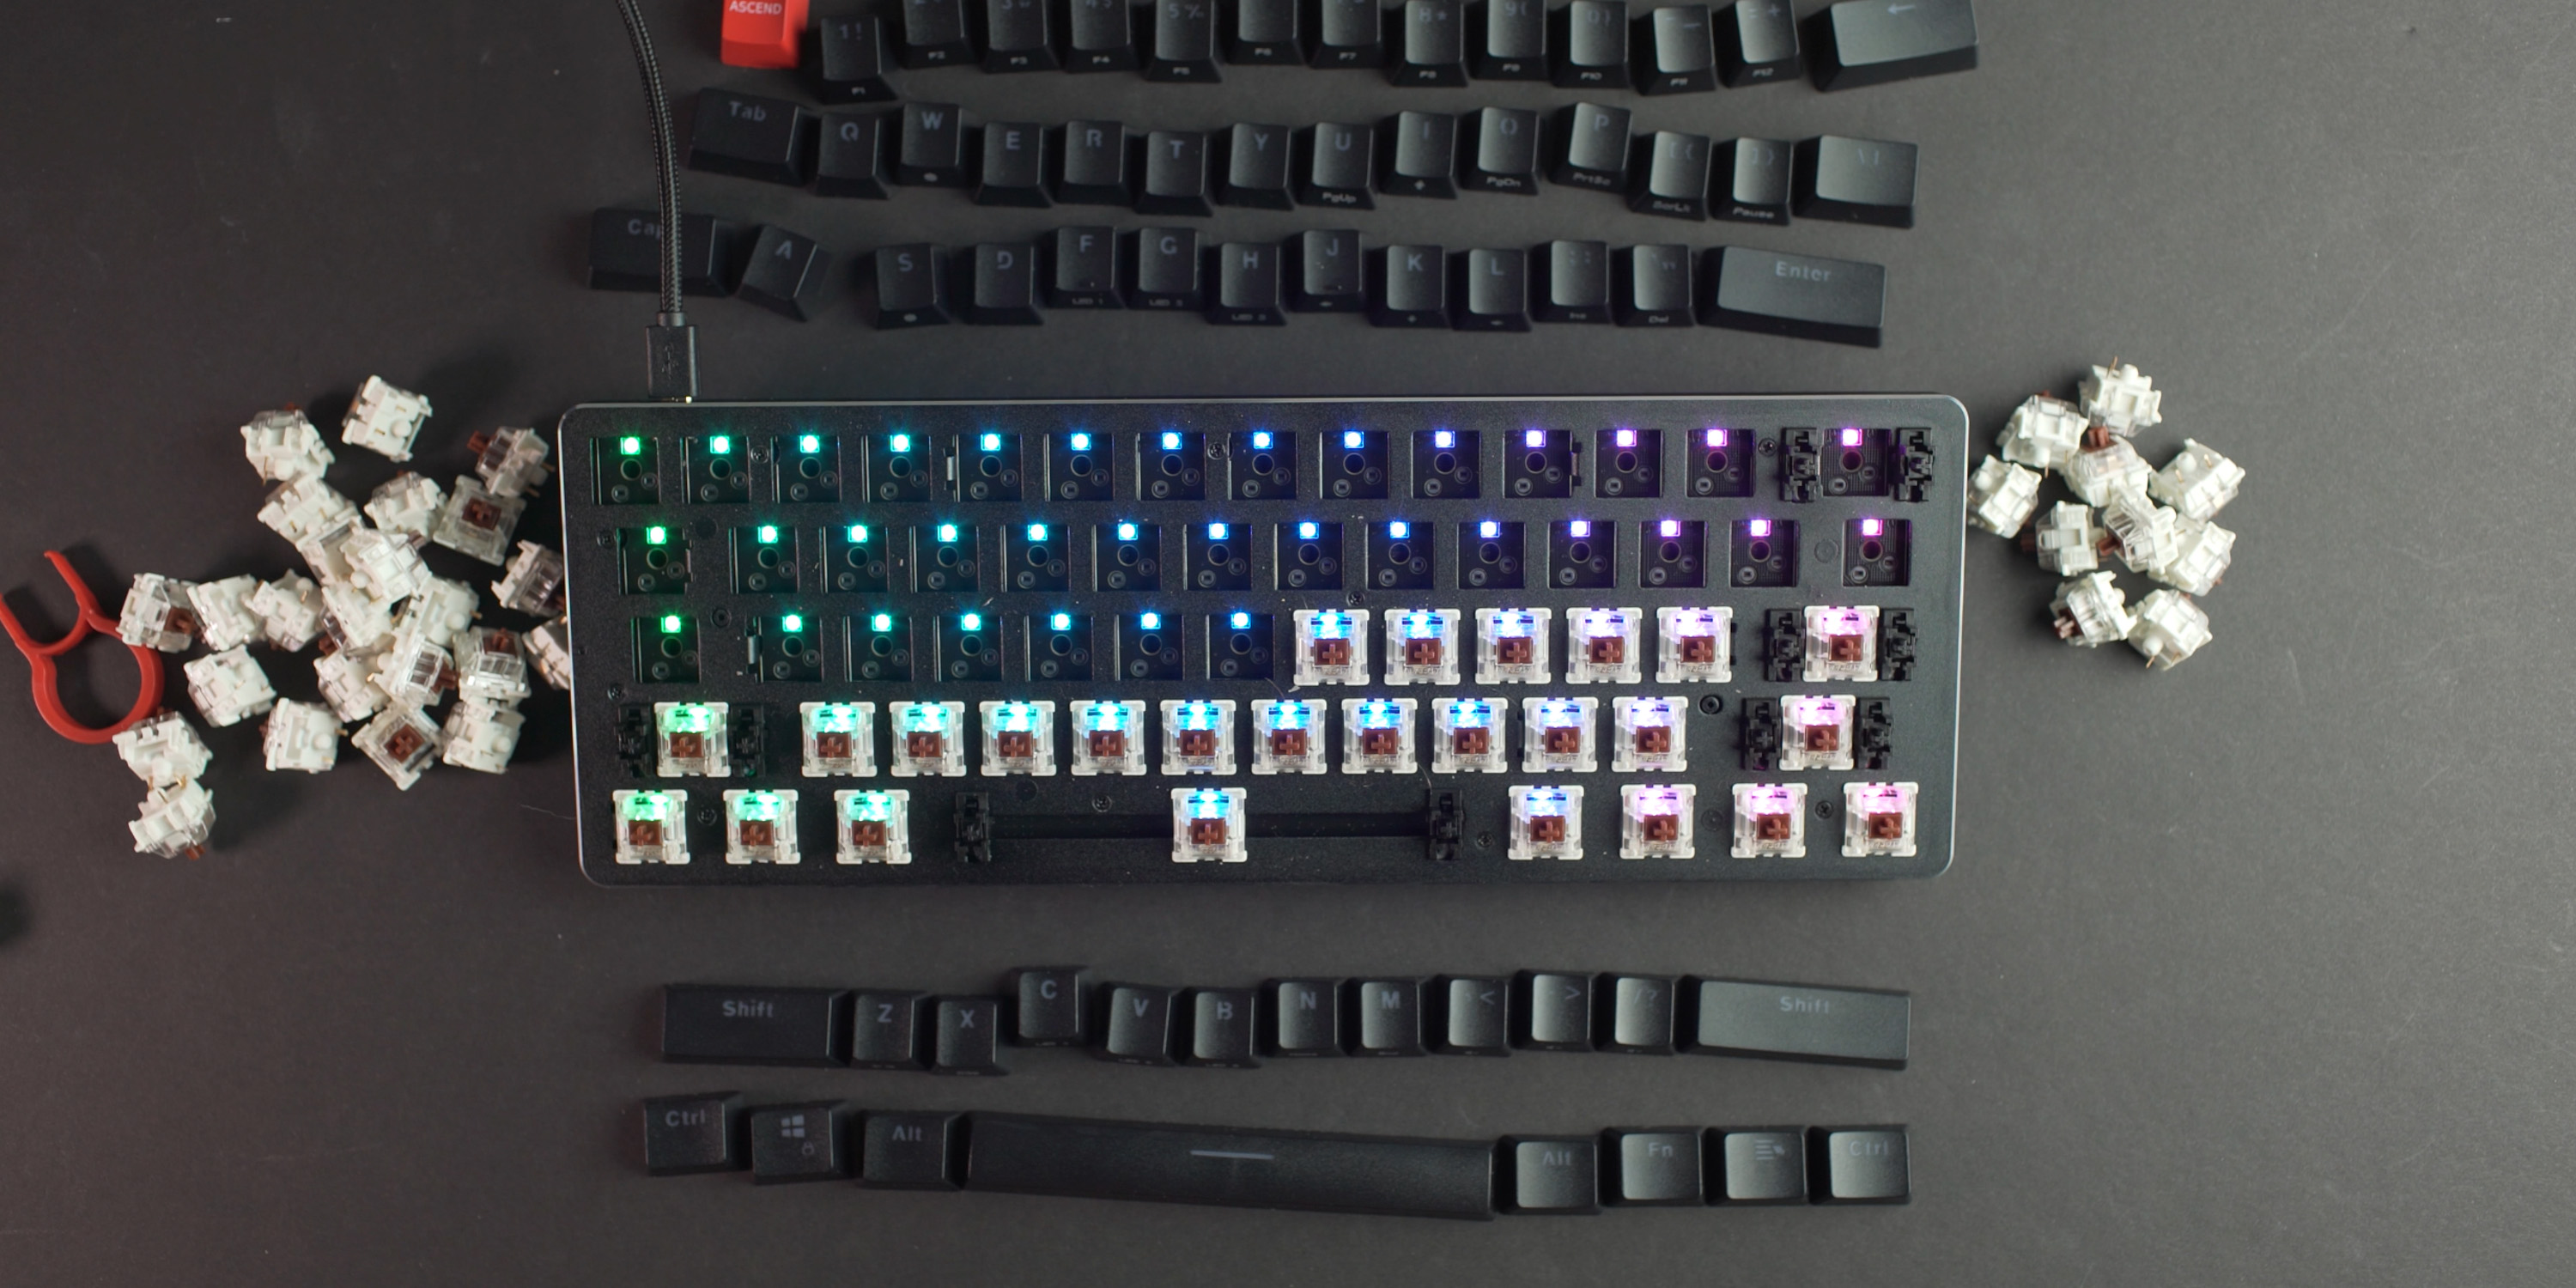 Swaping the switches on the Glorious GMMK Compact keyboard